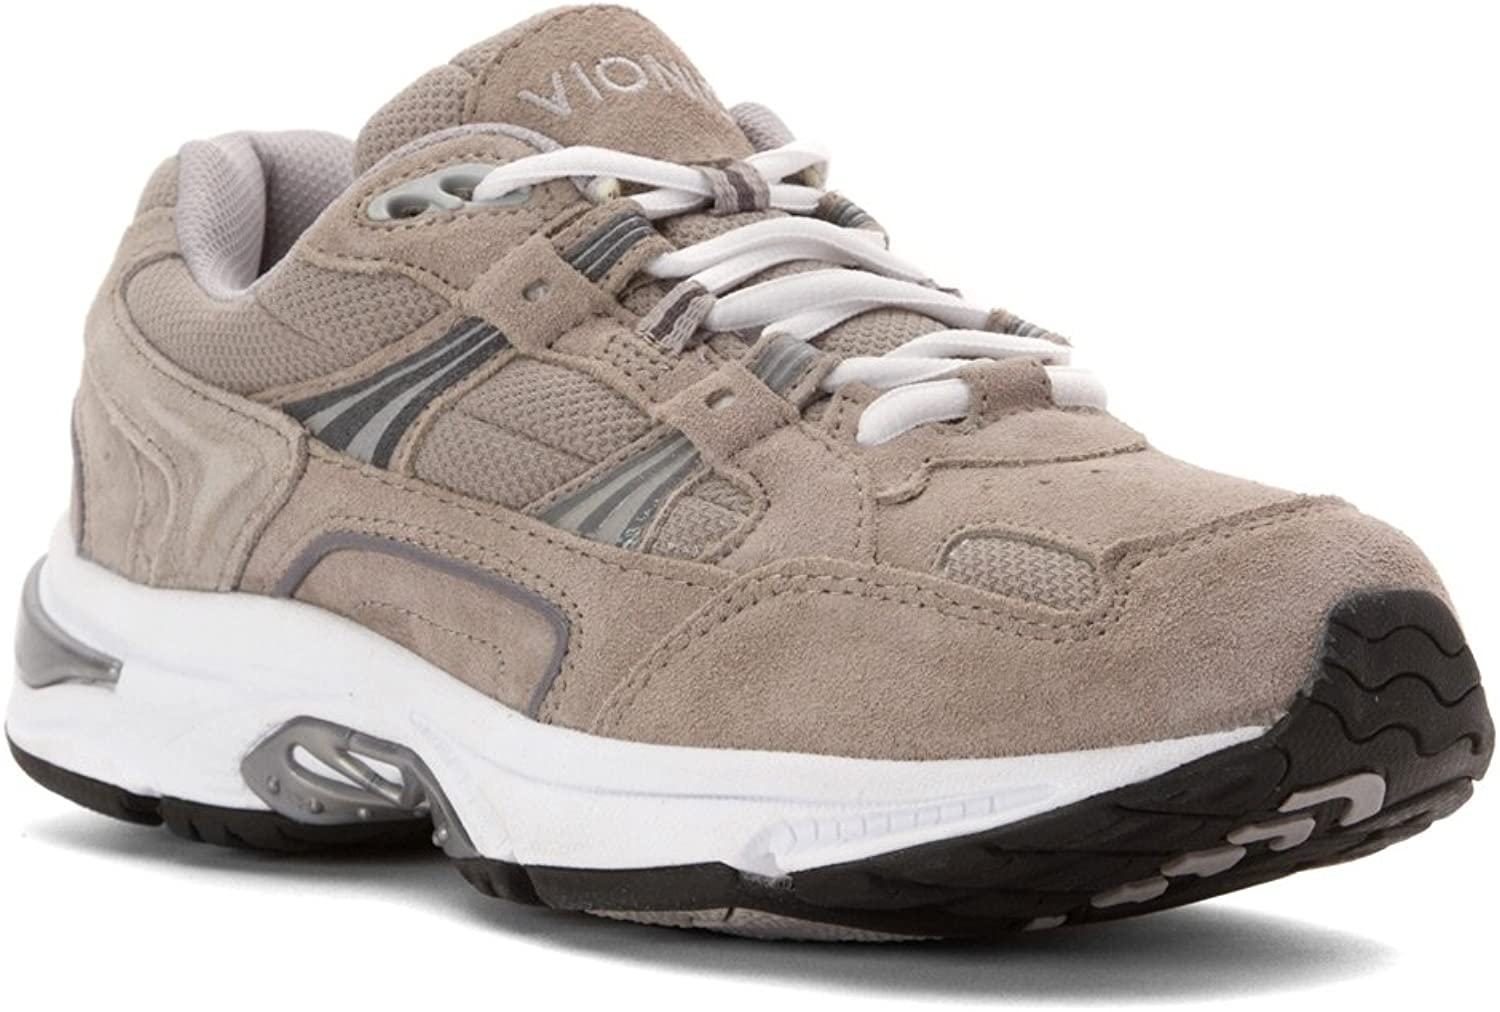 Vionic Men's Orthaheel Technology Grey Walker - 7 2E US